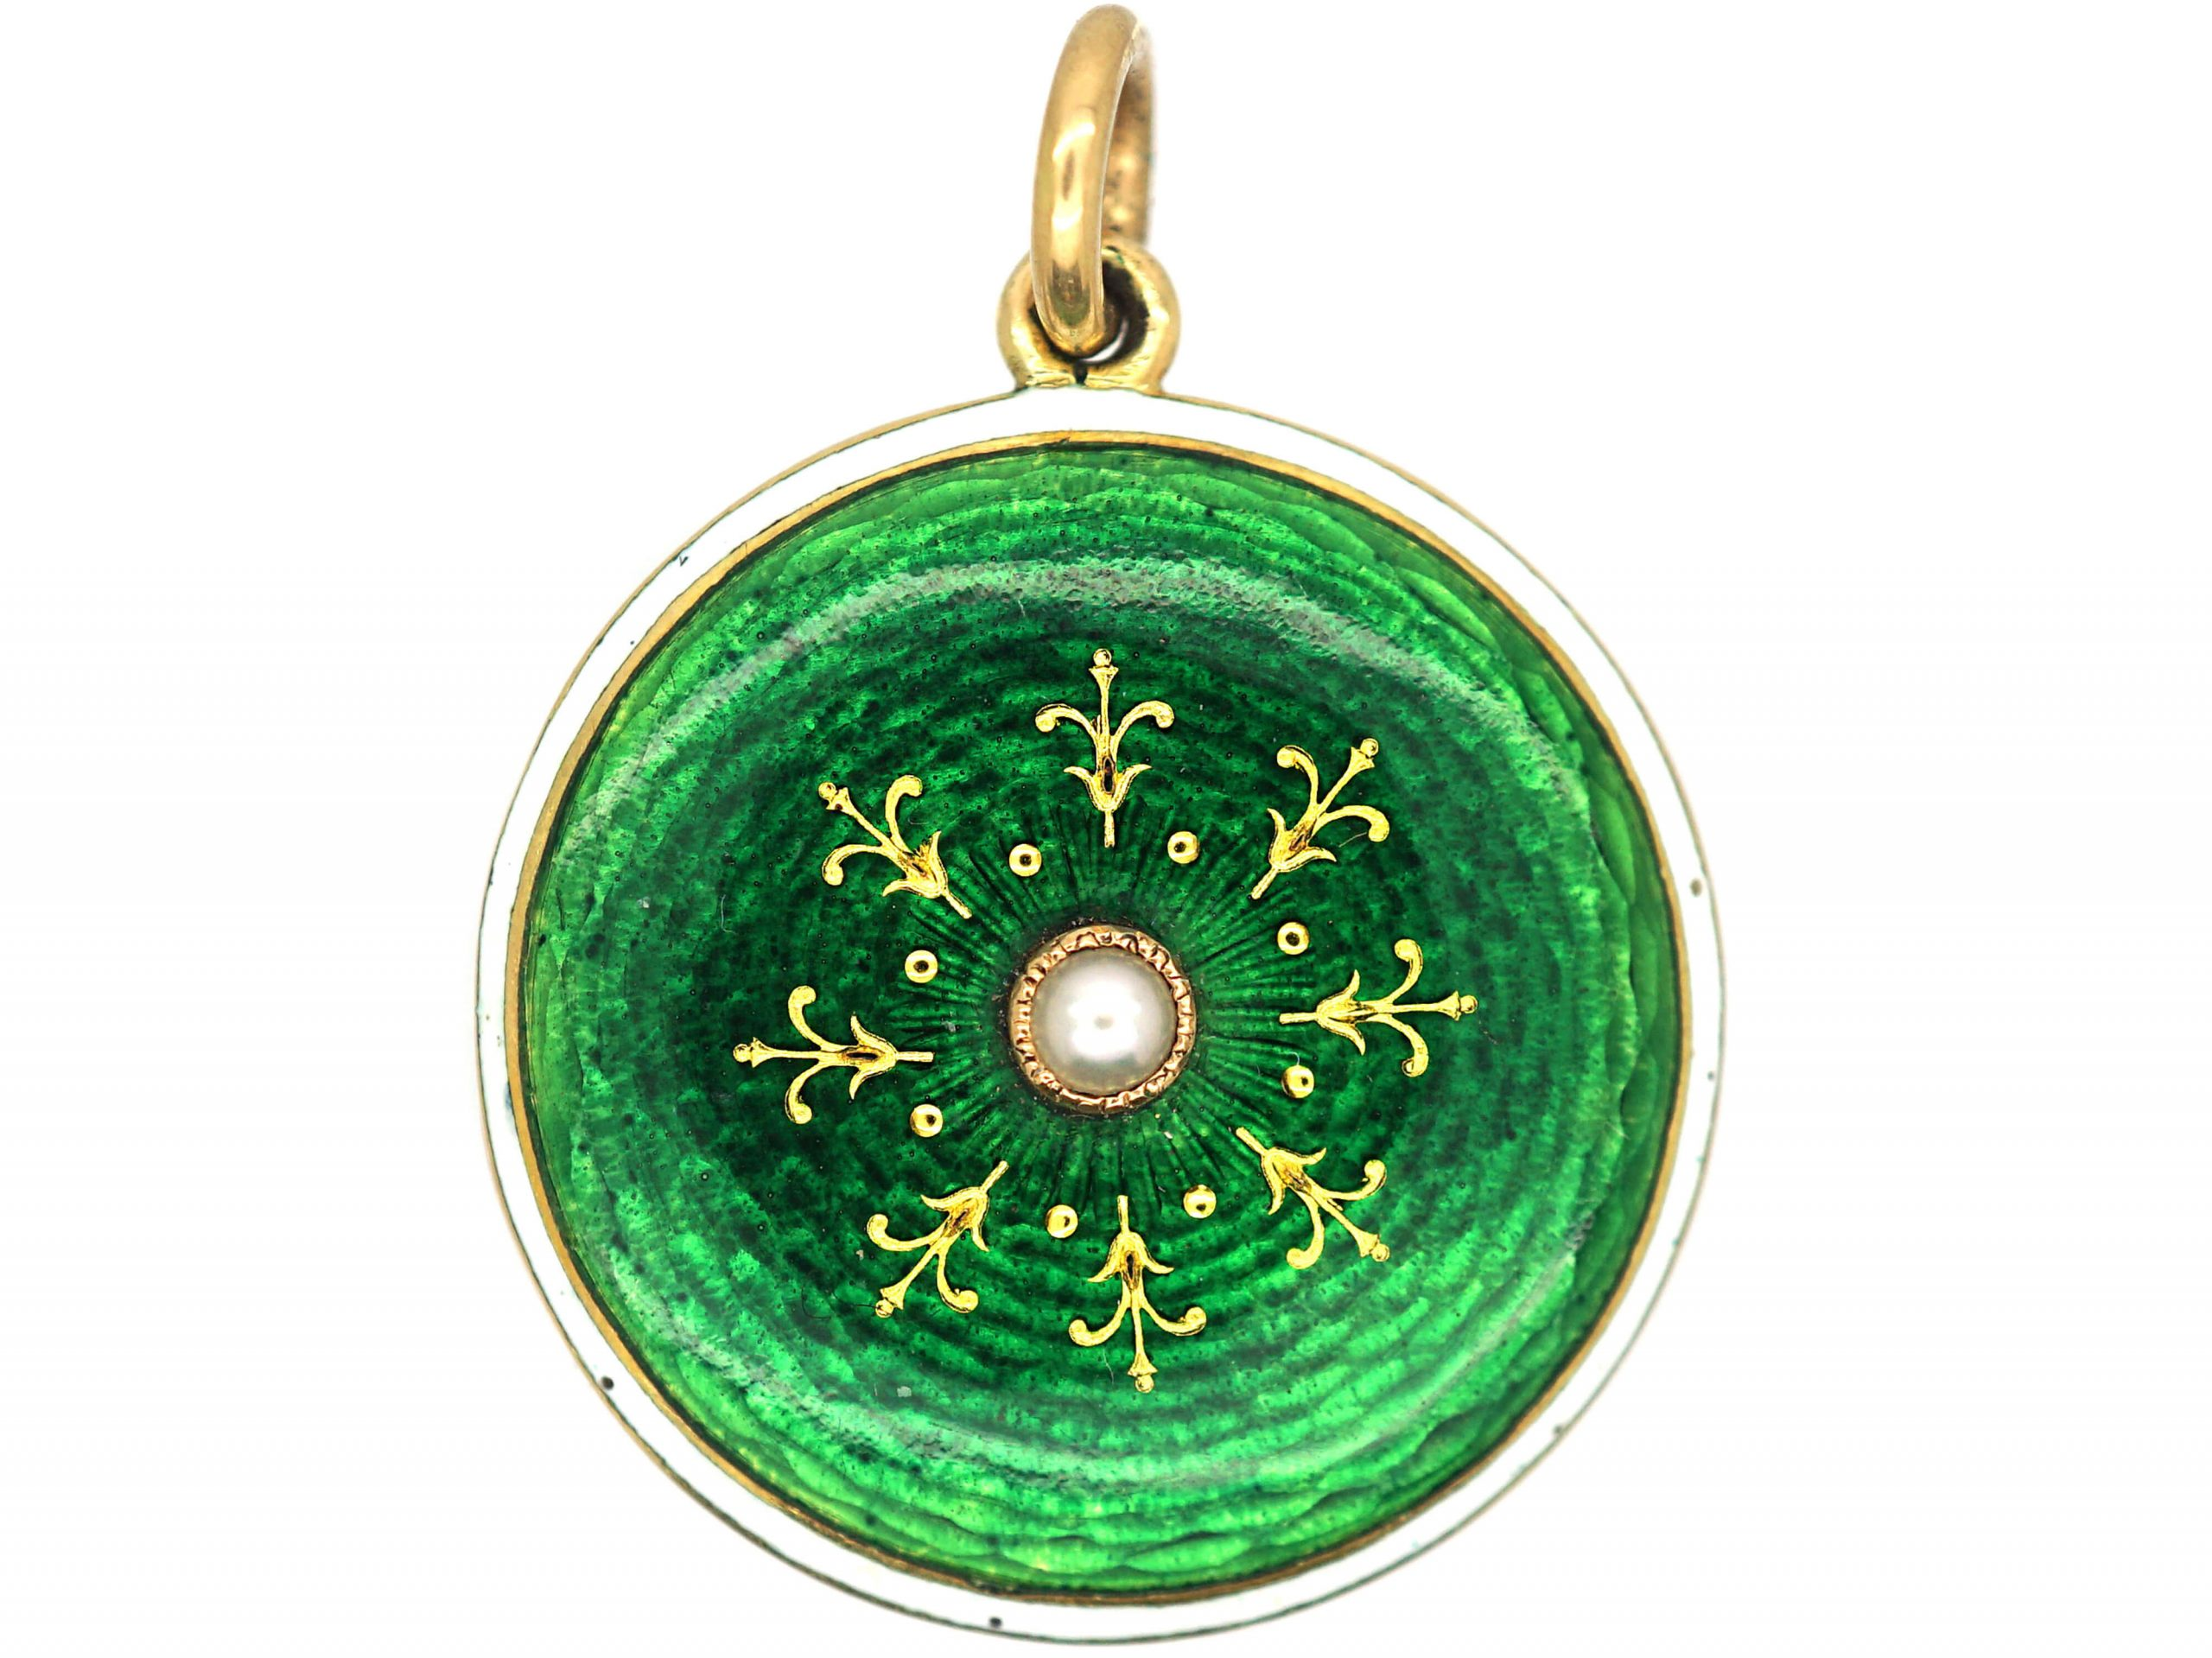 Edwardian 18ct Gold Green & White Enamel Round Locket with Natural Split Pearl in the Centre